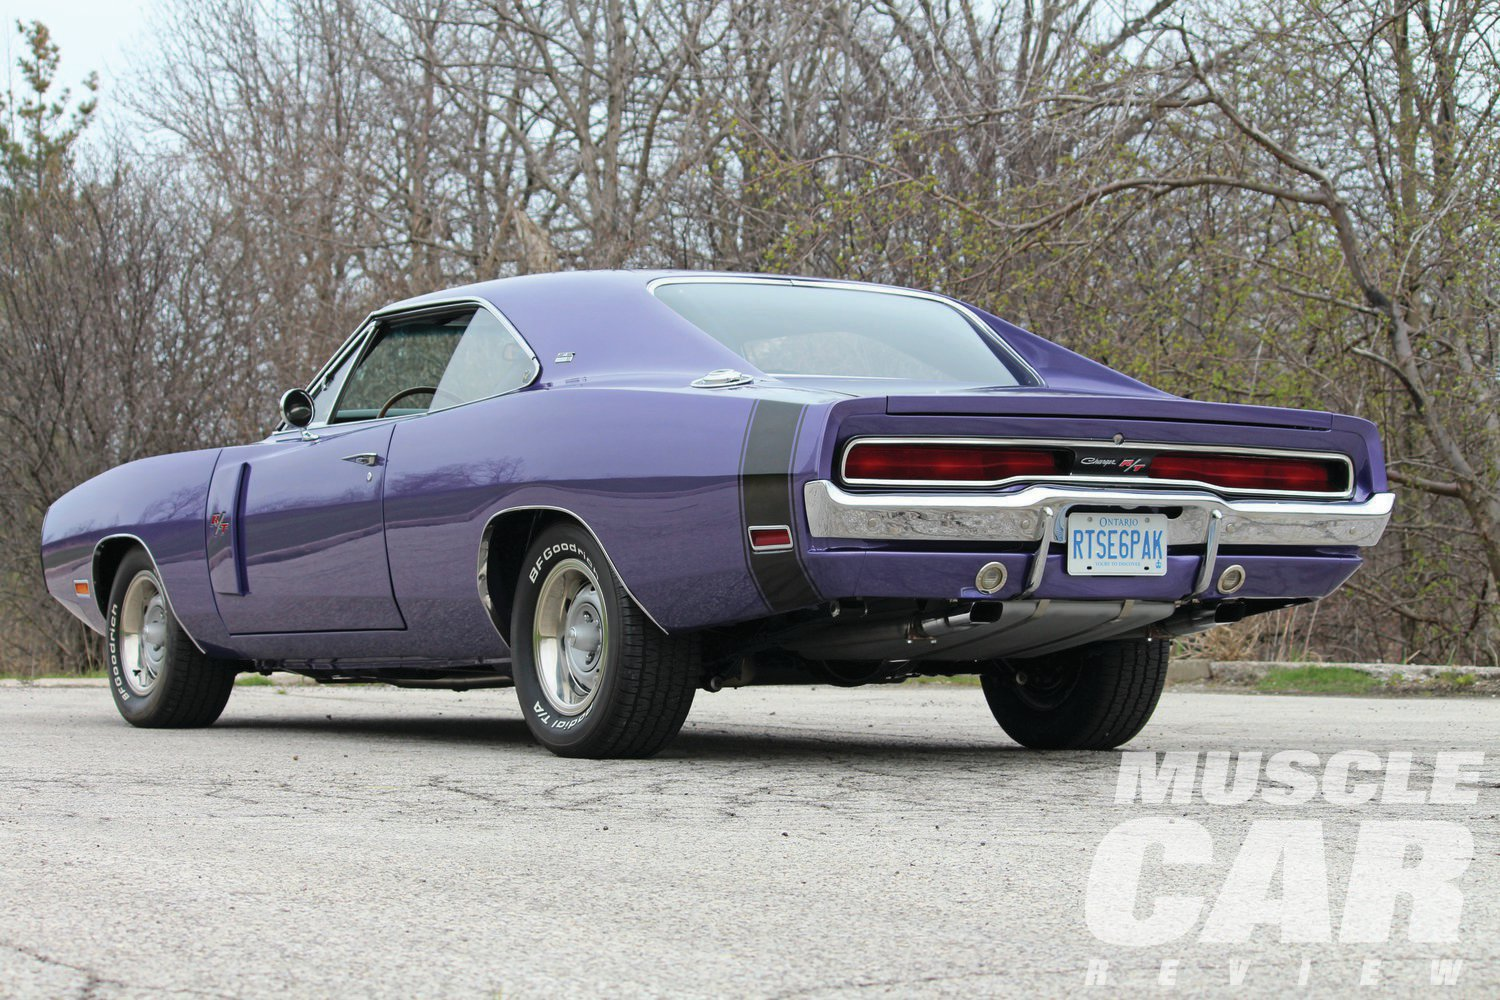 Don Lebeuf spent two years looking for just the right '70 Charger to restore, and another eight years in its rebuild. While the car was originally Hemi Orange, a few too many questions about the Dukes of Hazzard pushed Don into changing the color to Plum Crazy.